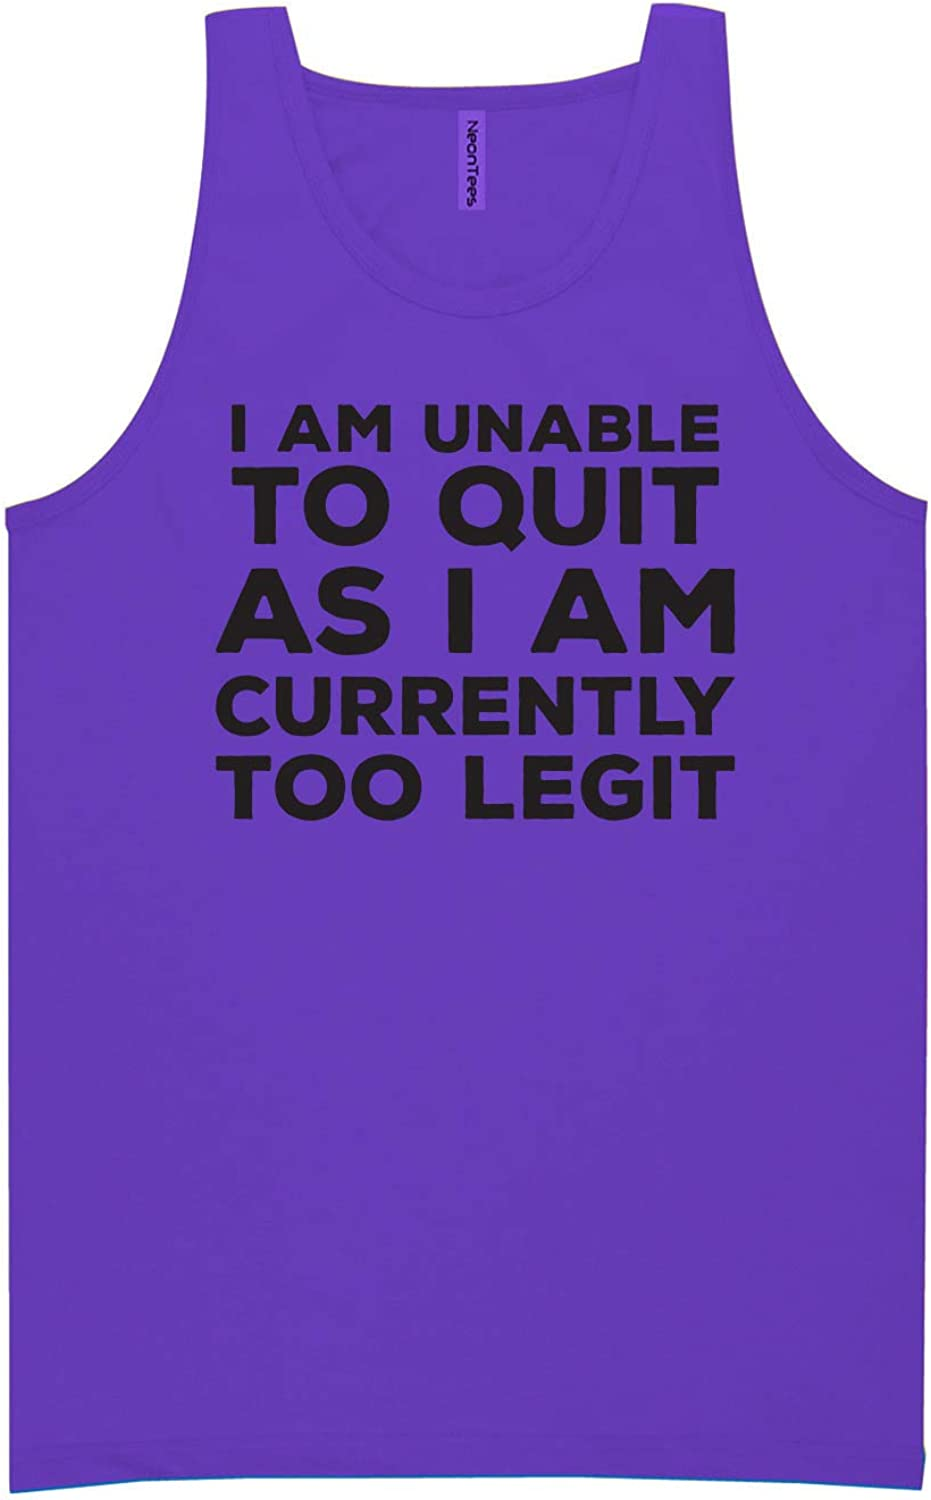 I Am Unable to Quit.Too Legit Neon Tank Top